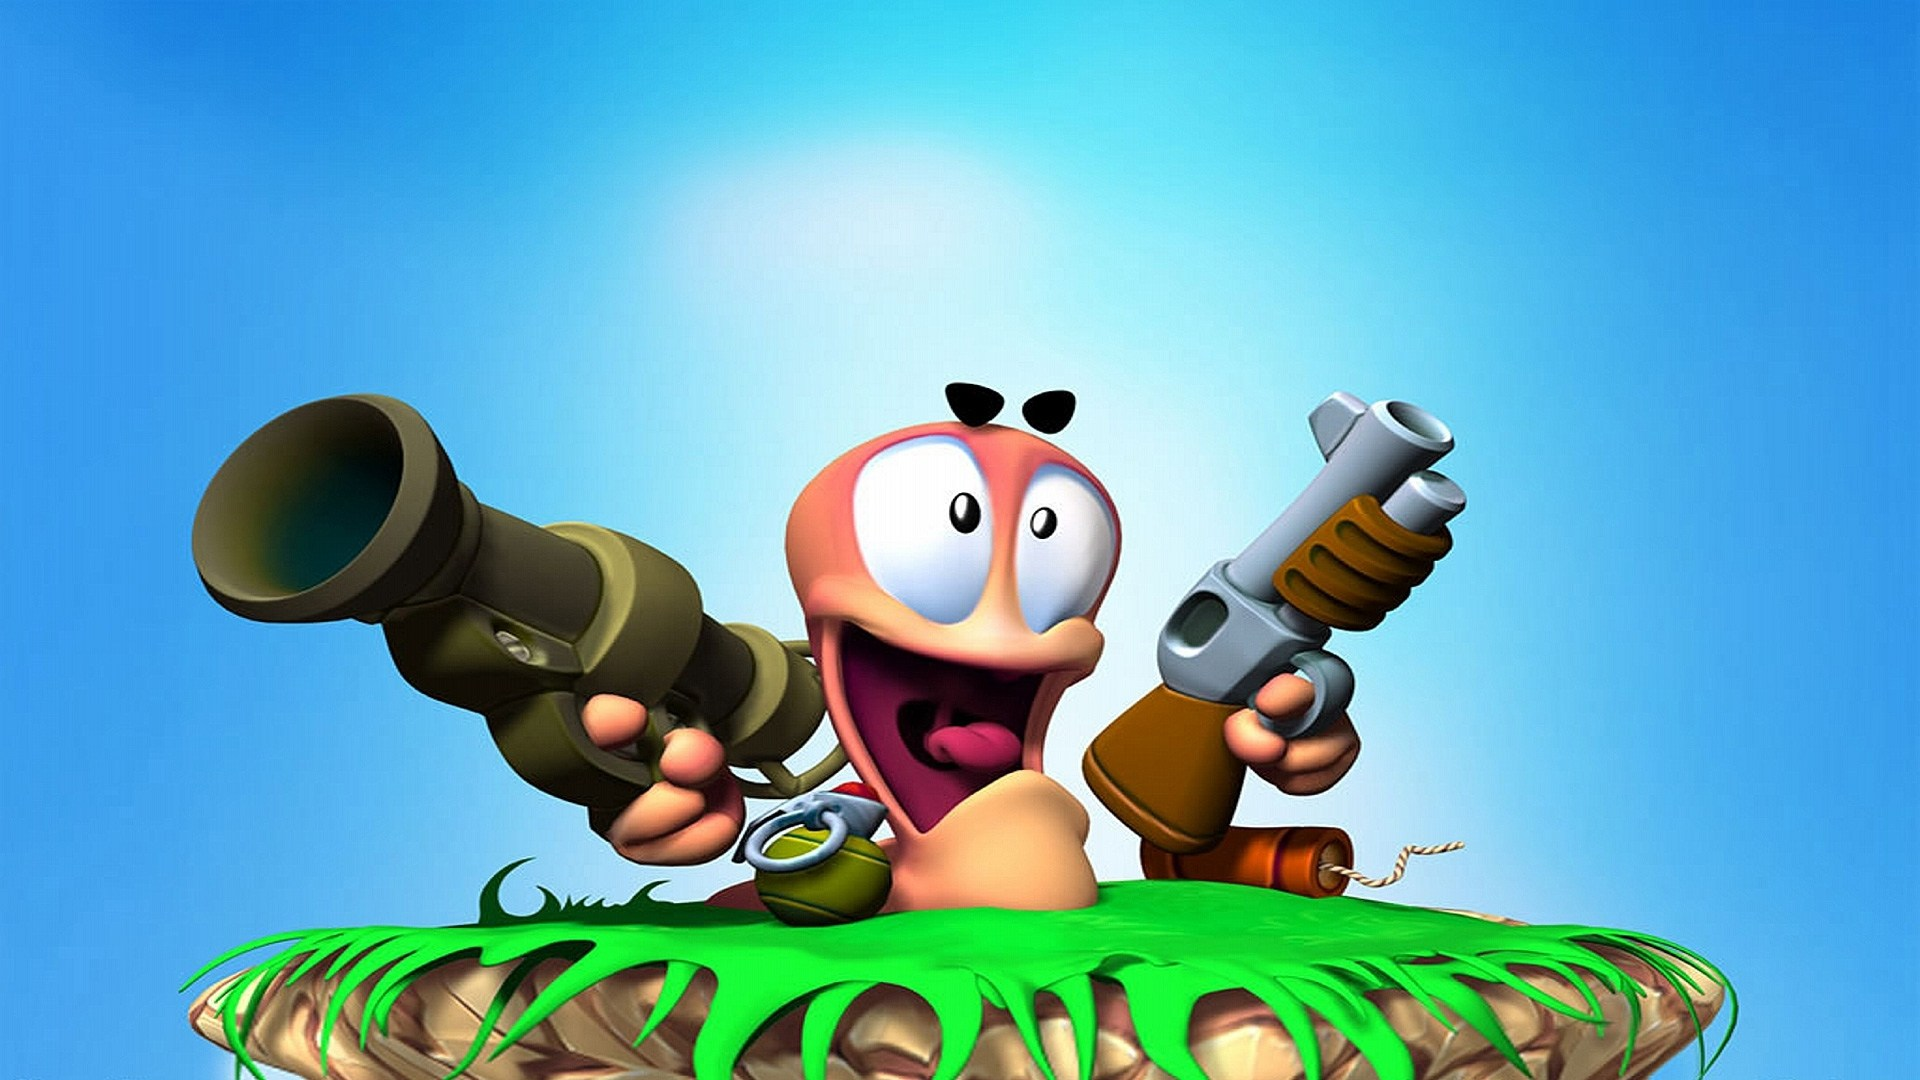 Worms Game Backgrounds